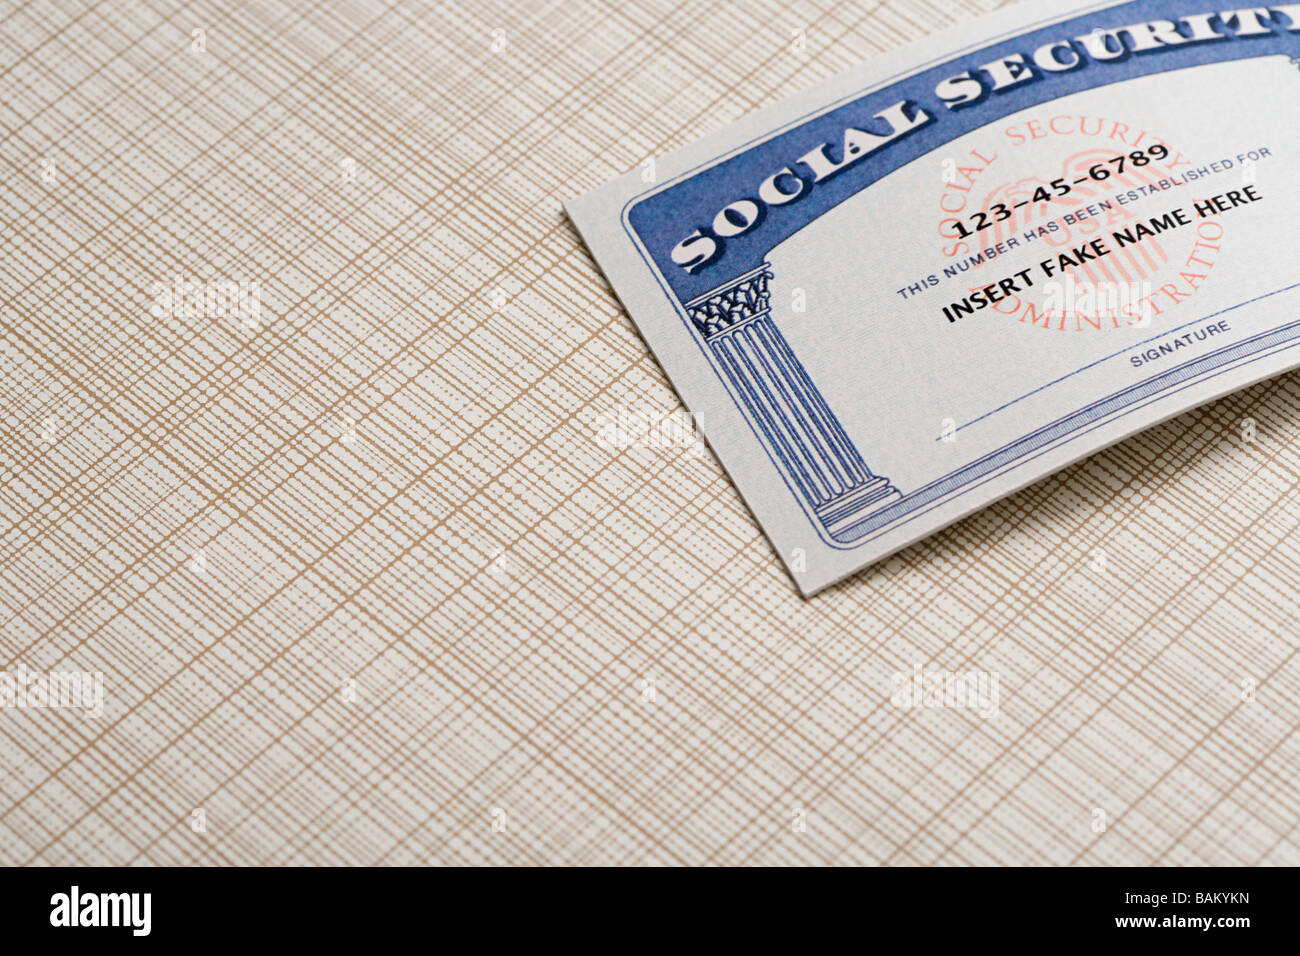 Card Fake - 23795737 Alamy Stock Social Security Photo